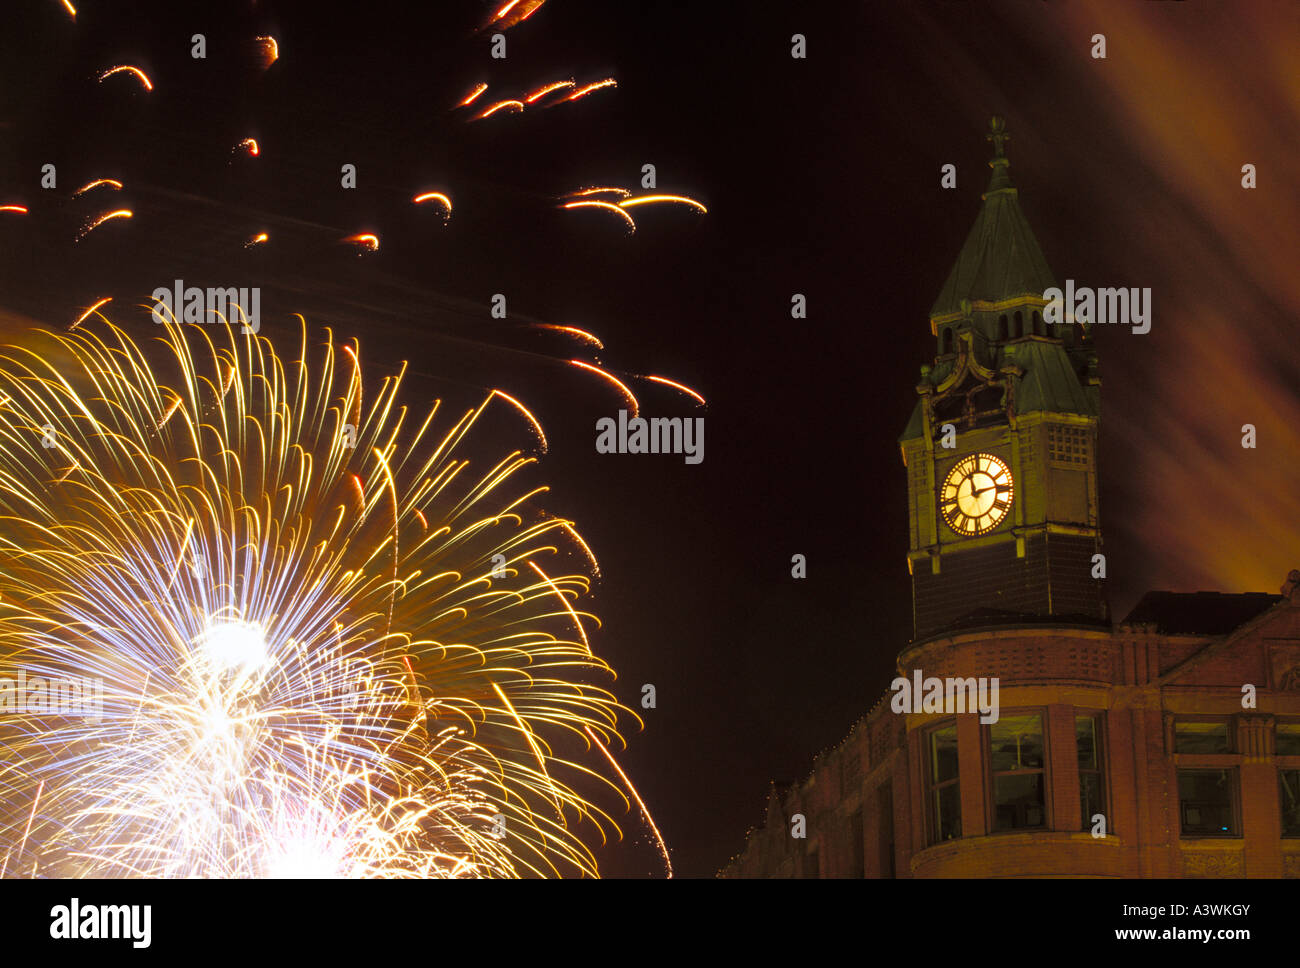 Fireworks burst around the historic Savings Bank building in downtown Marquette on the Fourth of July - Stock Image